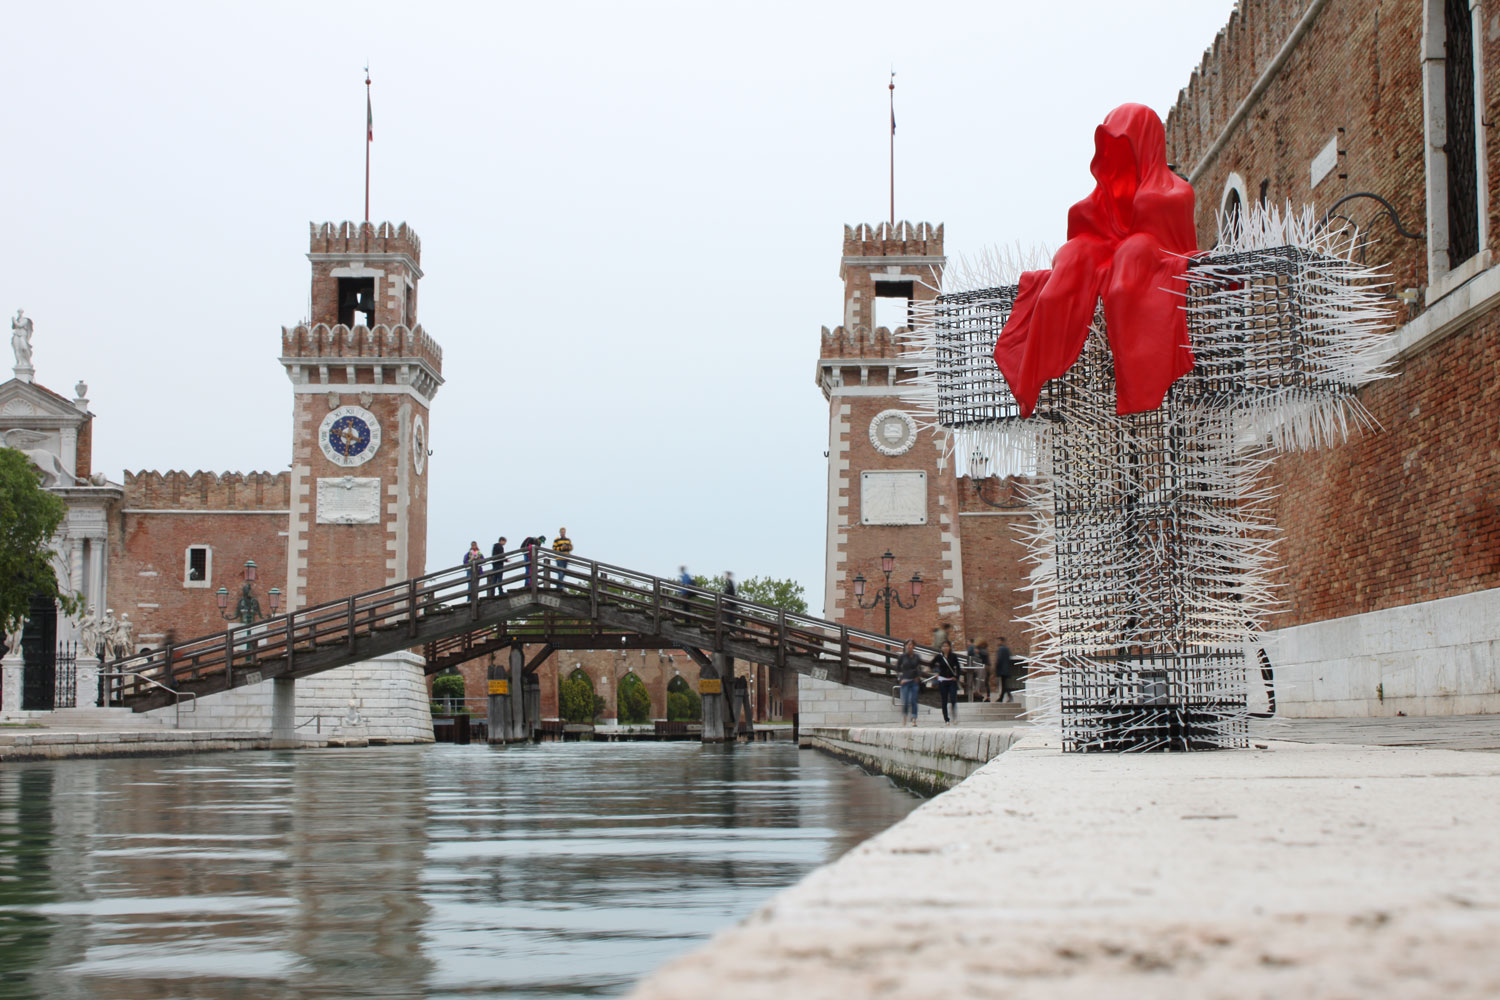 public-show-art-biennial-venice-italy-christoph-luckeneder-manfred-kielnhofer-t-guardian-sculpture-art-arts-arte-3134